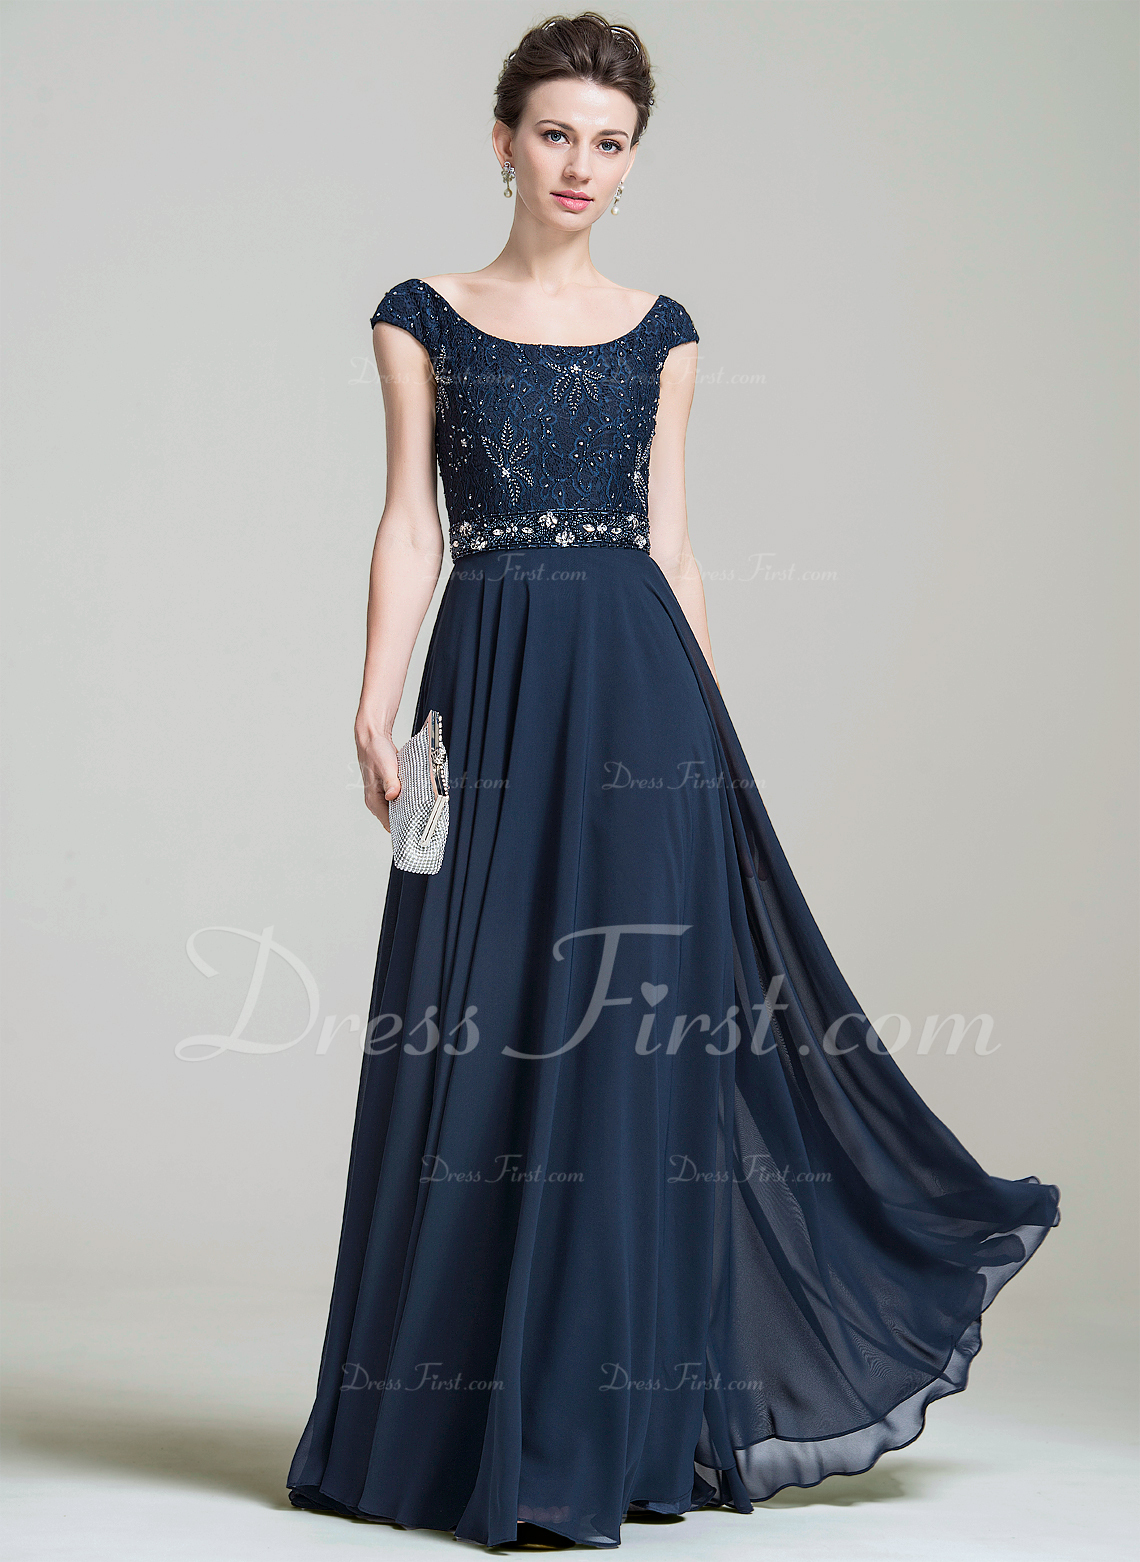 d3ec8f1f41c A-Line Princess Scoop Neck Floor-Length Chiffon Lace Mother of the Bride  Dress With Beading Sequins  74200